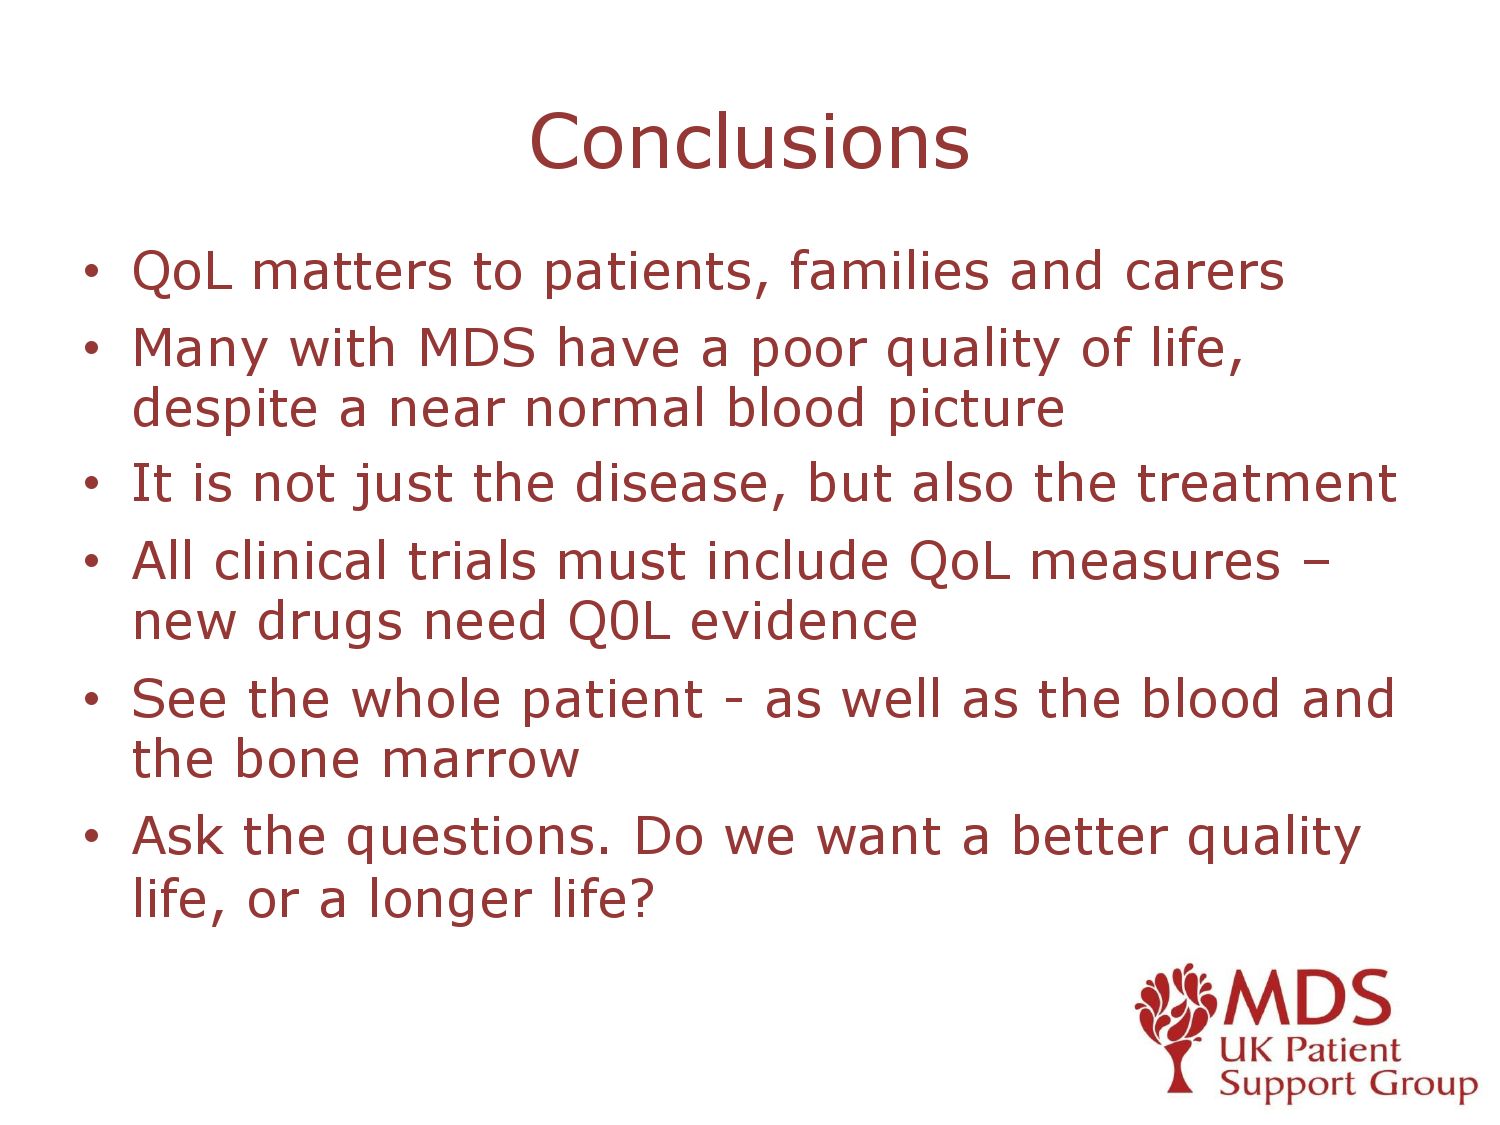 uk-mds-forum-slides-2014-slide-26.png